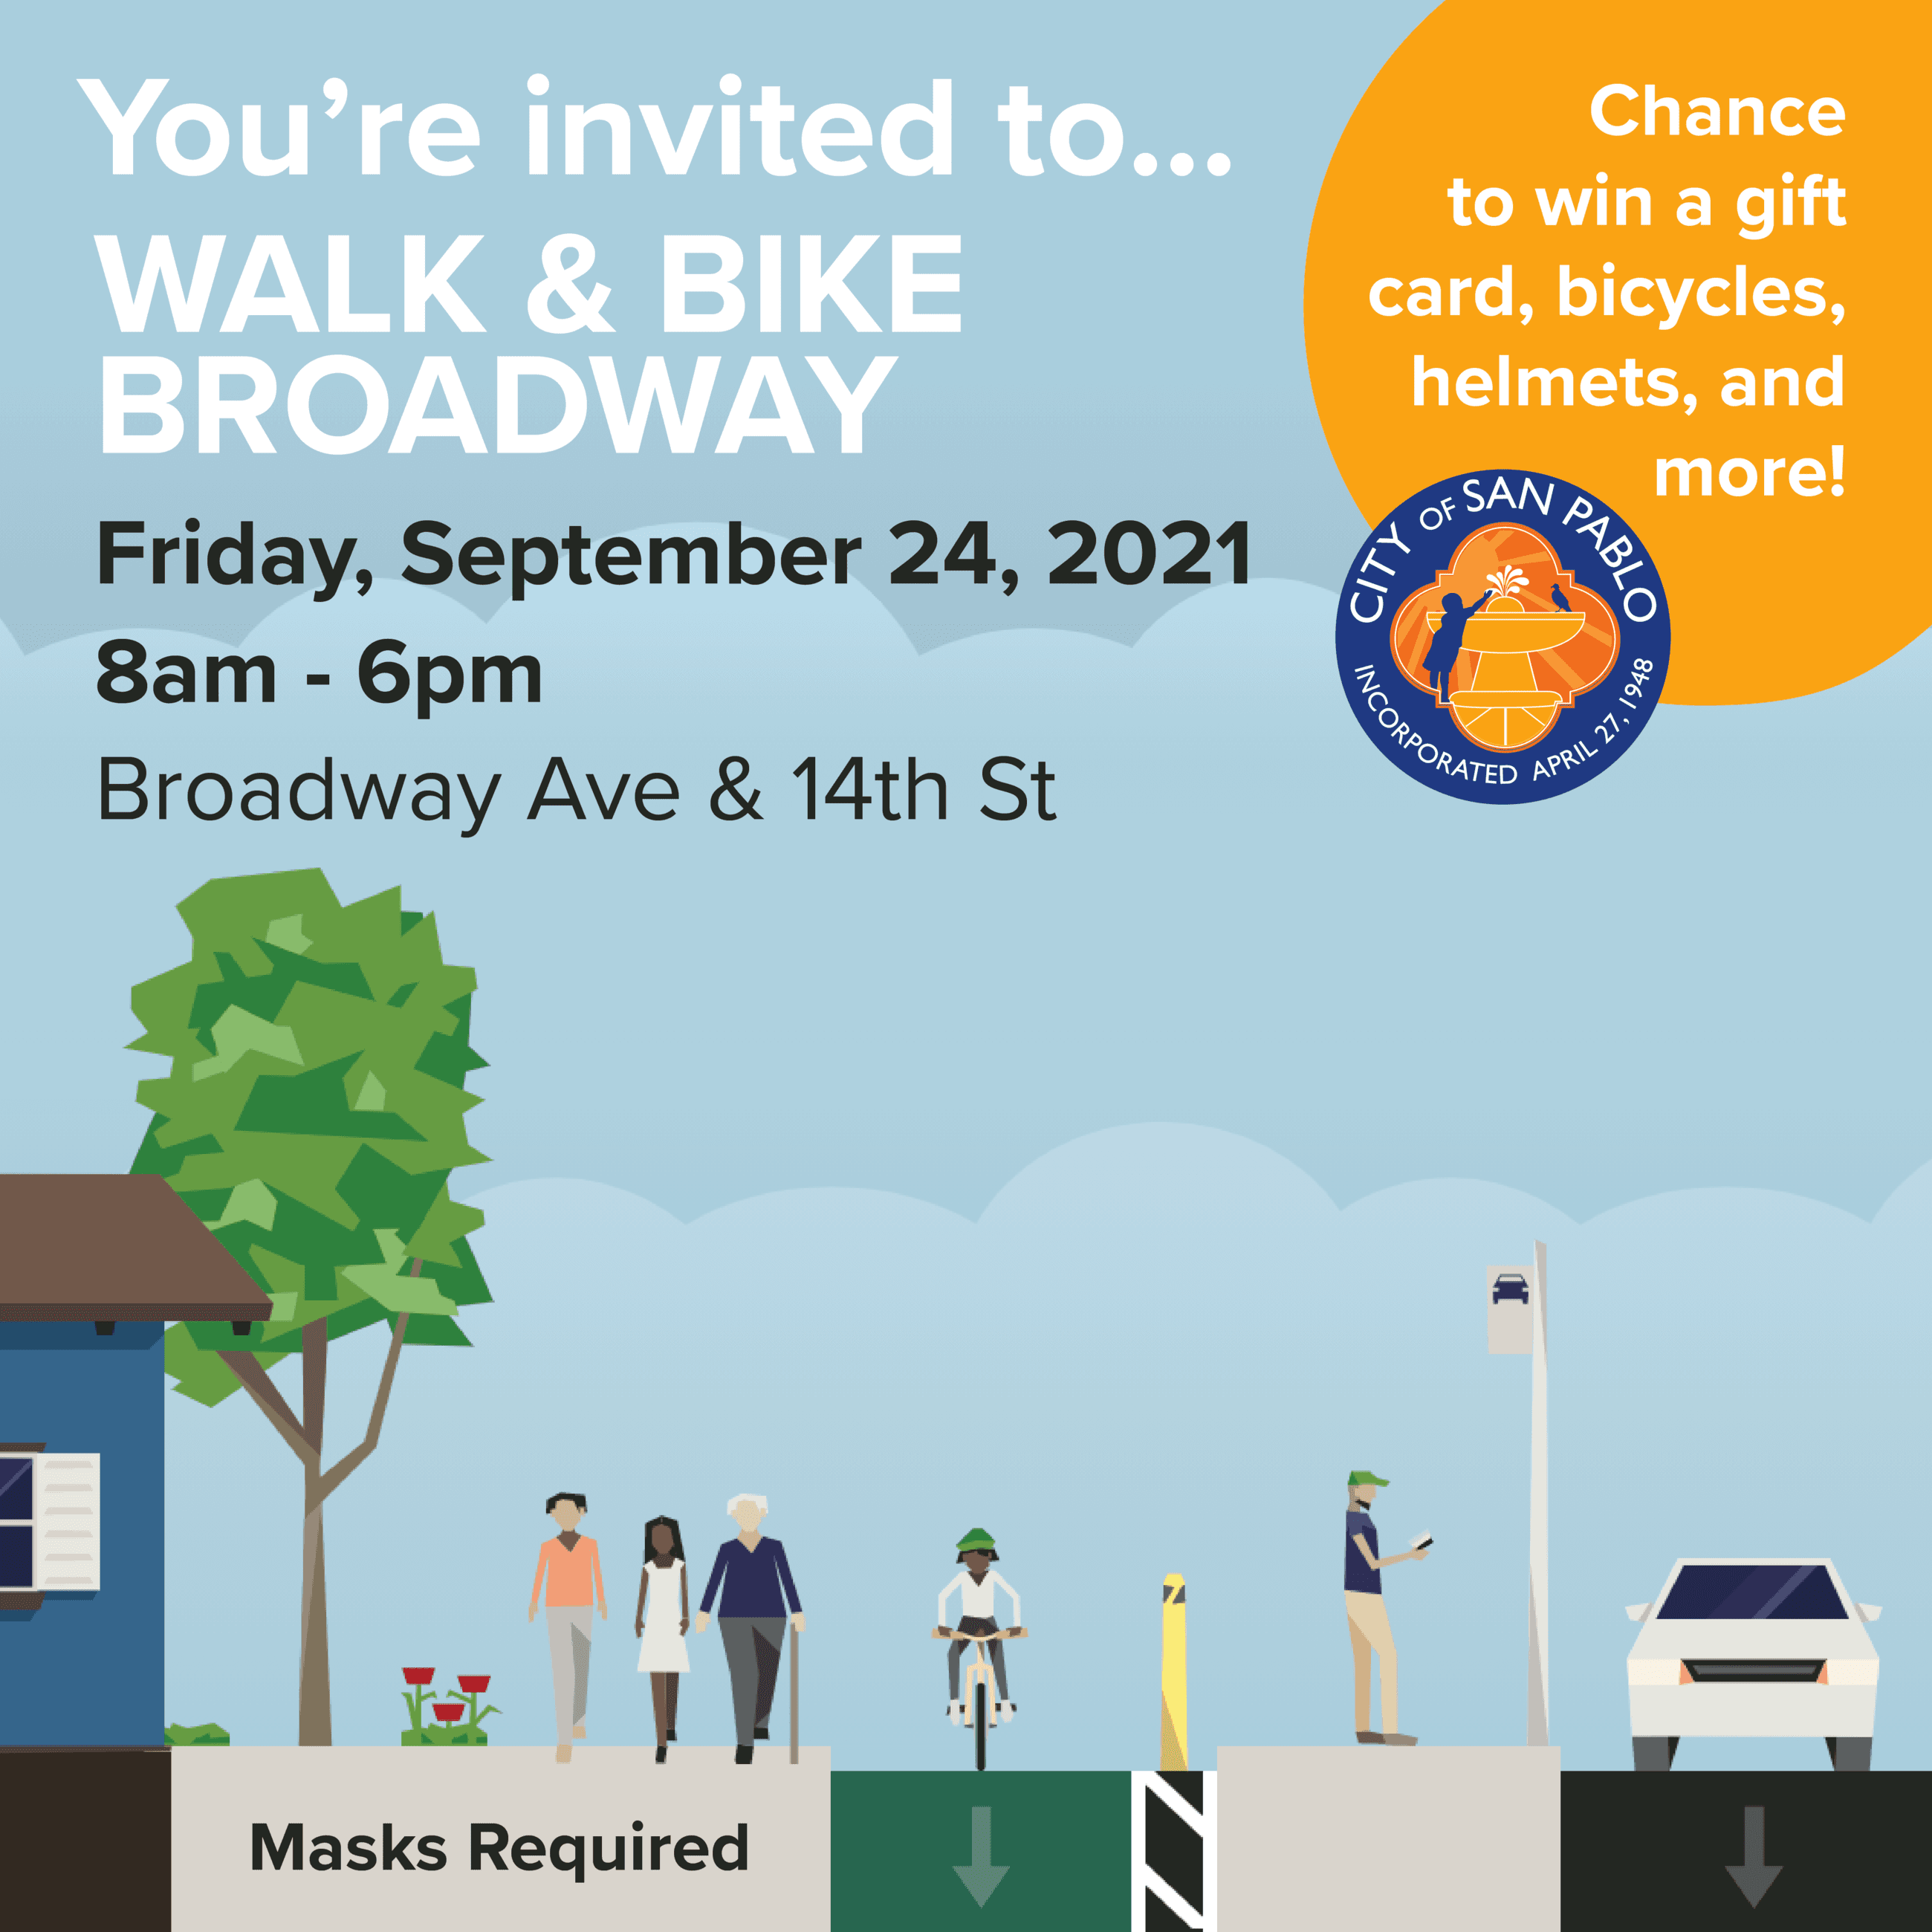 You're invited to Walk & Bike Broadway Friday, September 24, 2021 8am - 6pm Broadway Ave & 14th S